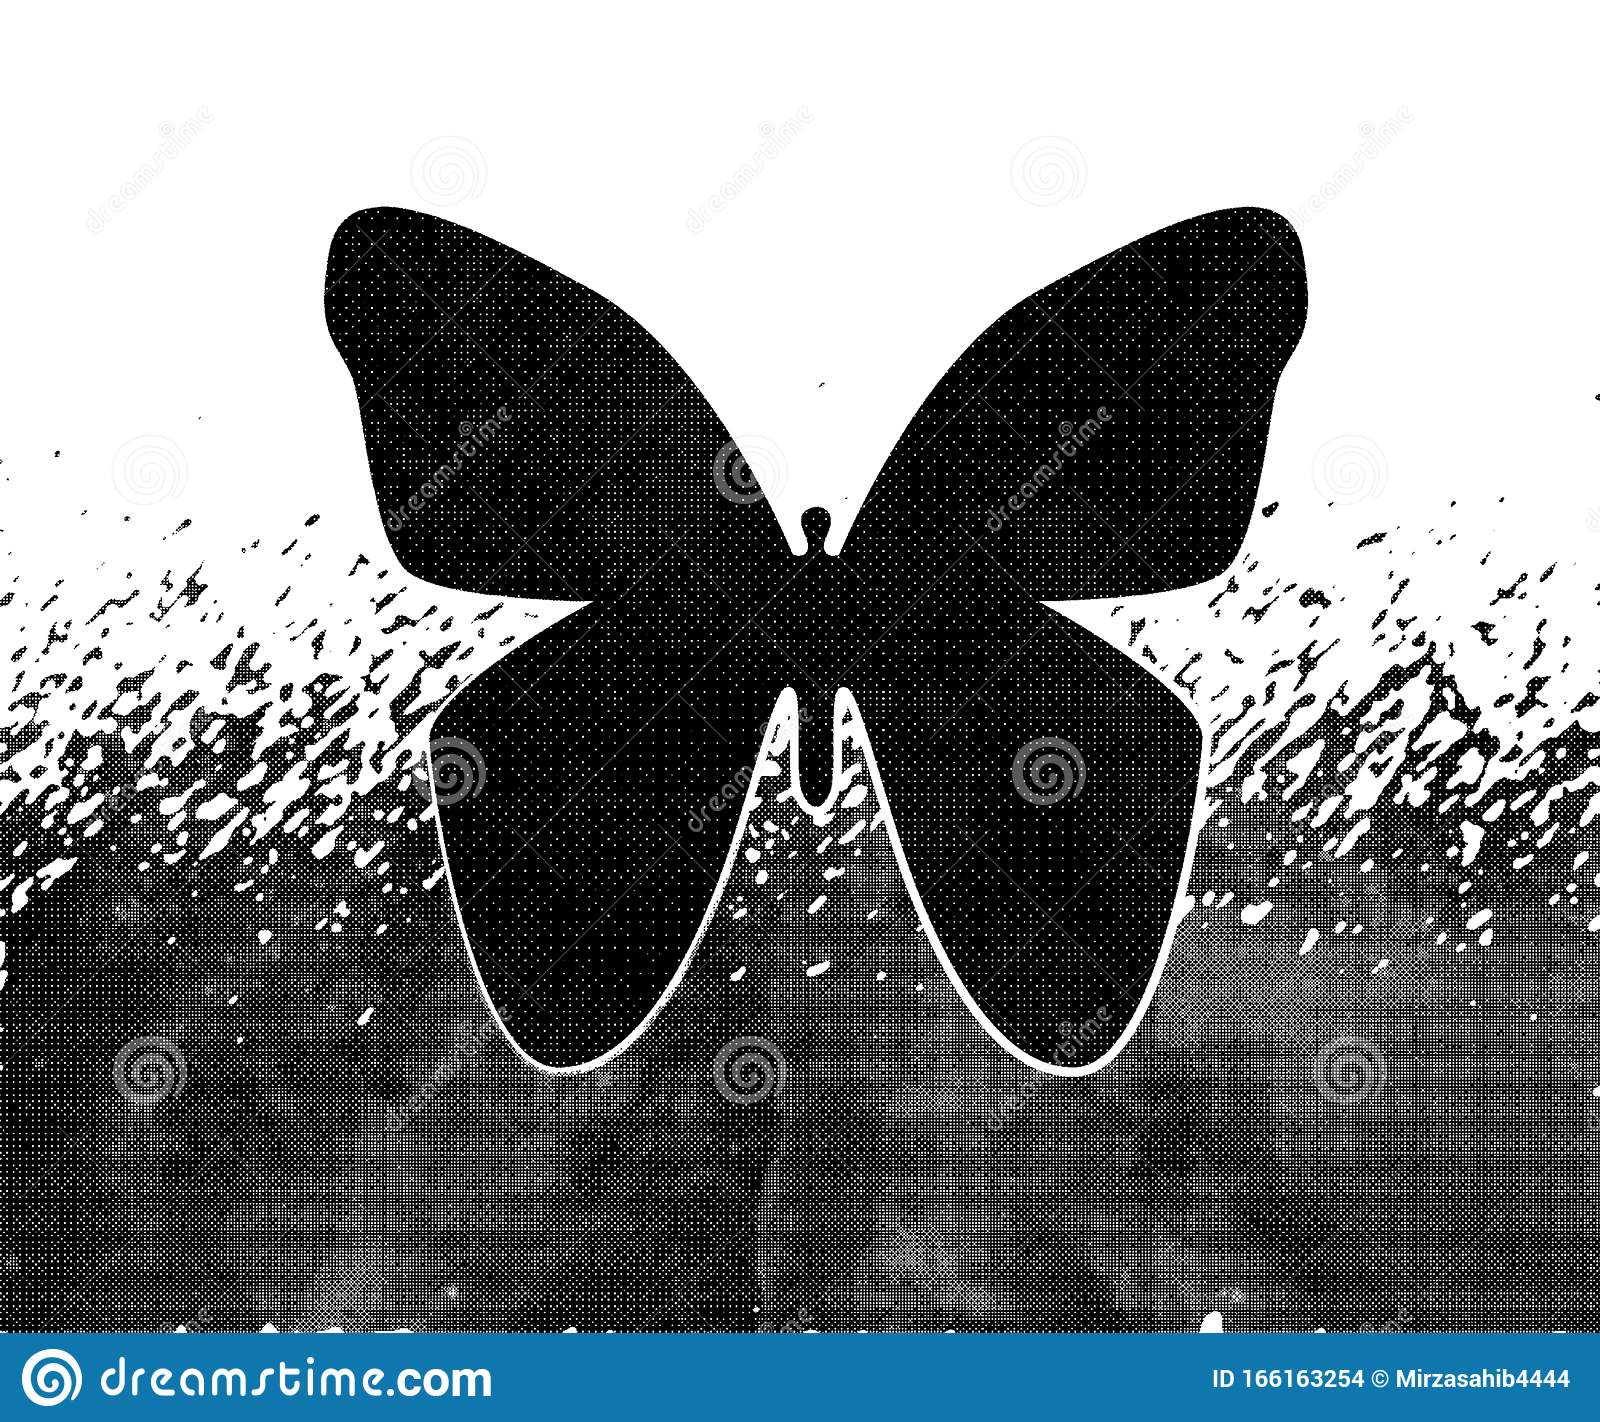 Black And White Abstract Butterfly Wallpaper Background Stock Illustration Illustration Of Abstract Background 166163254